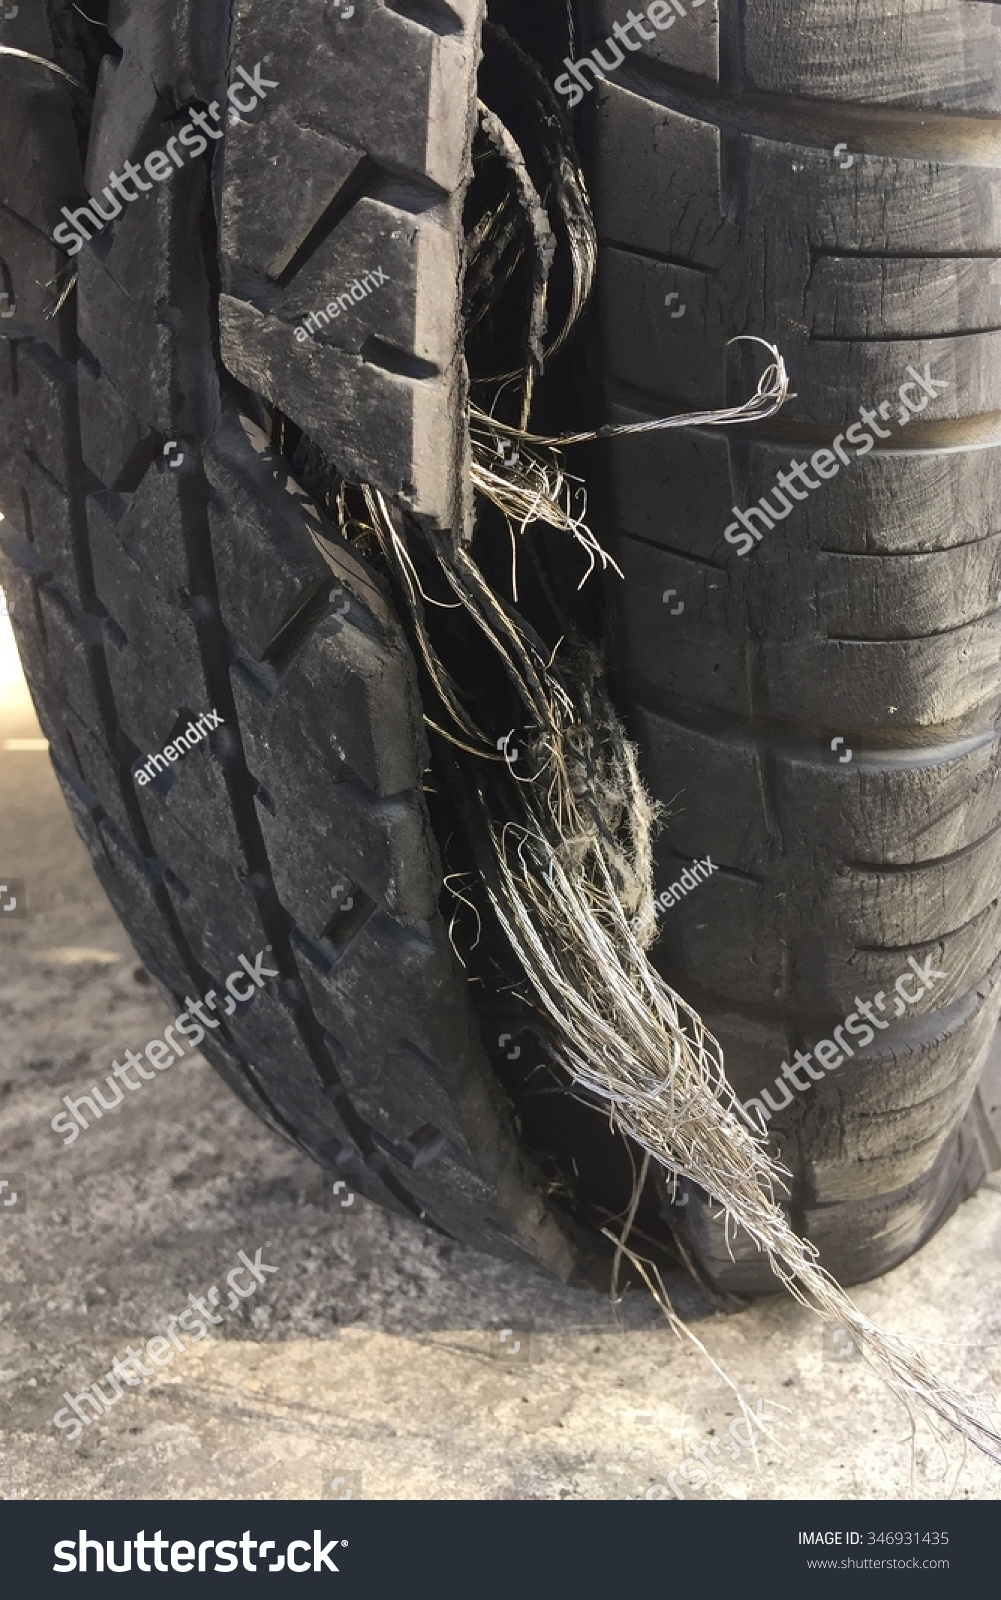 Damaged Tire After Tire Explosion High Stock Photo (Download Now ...